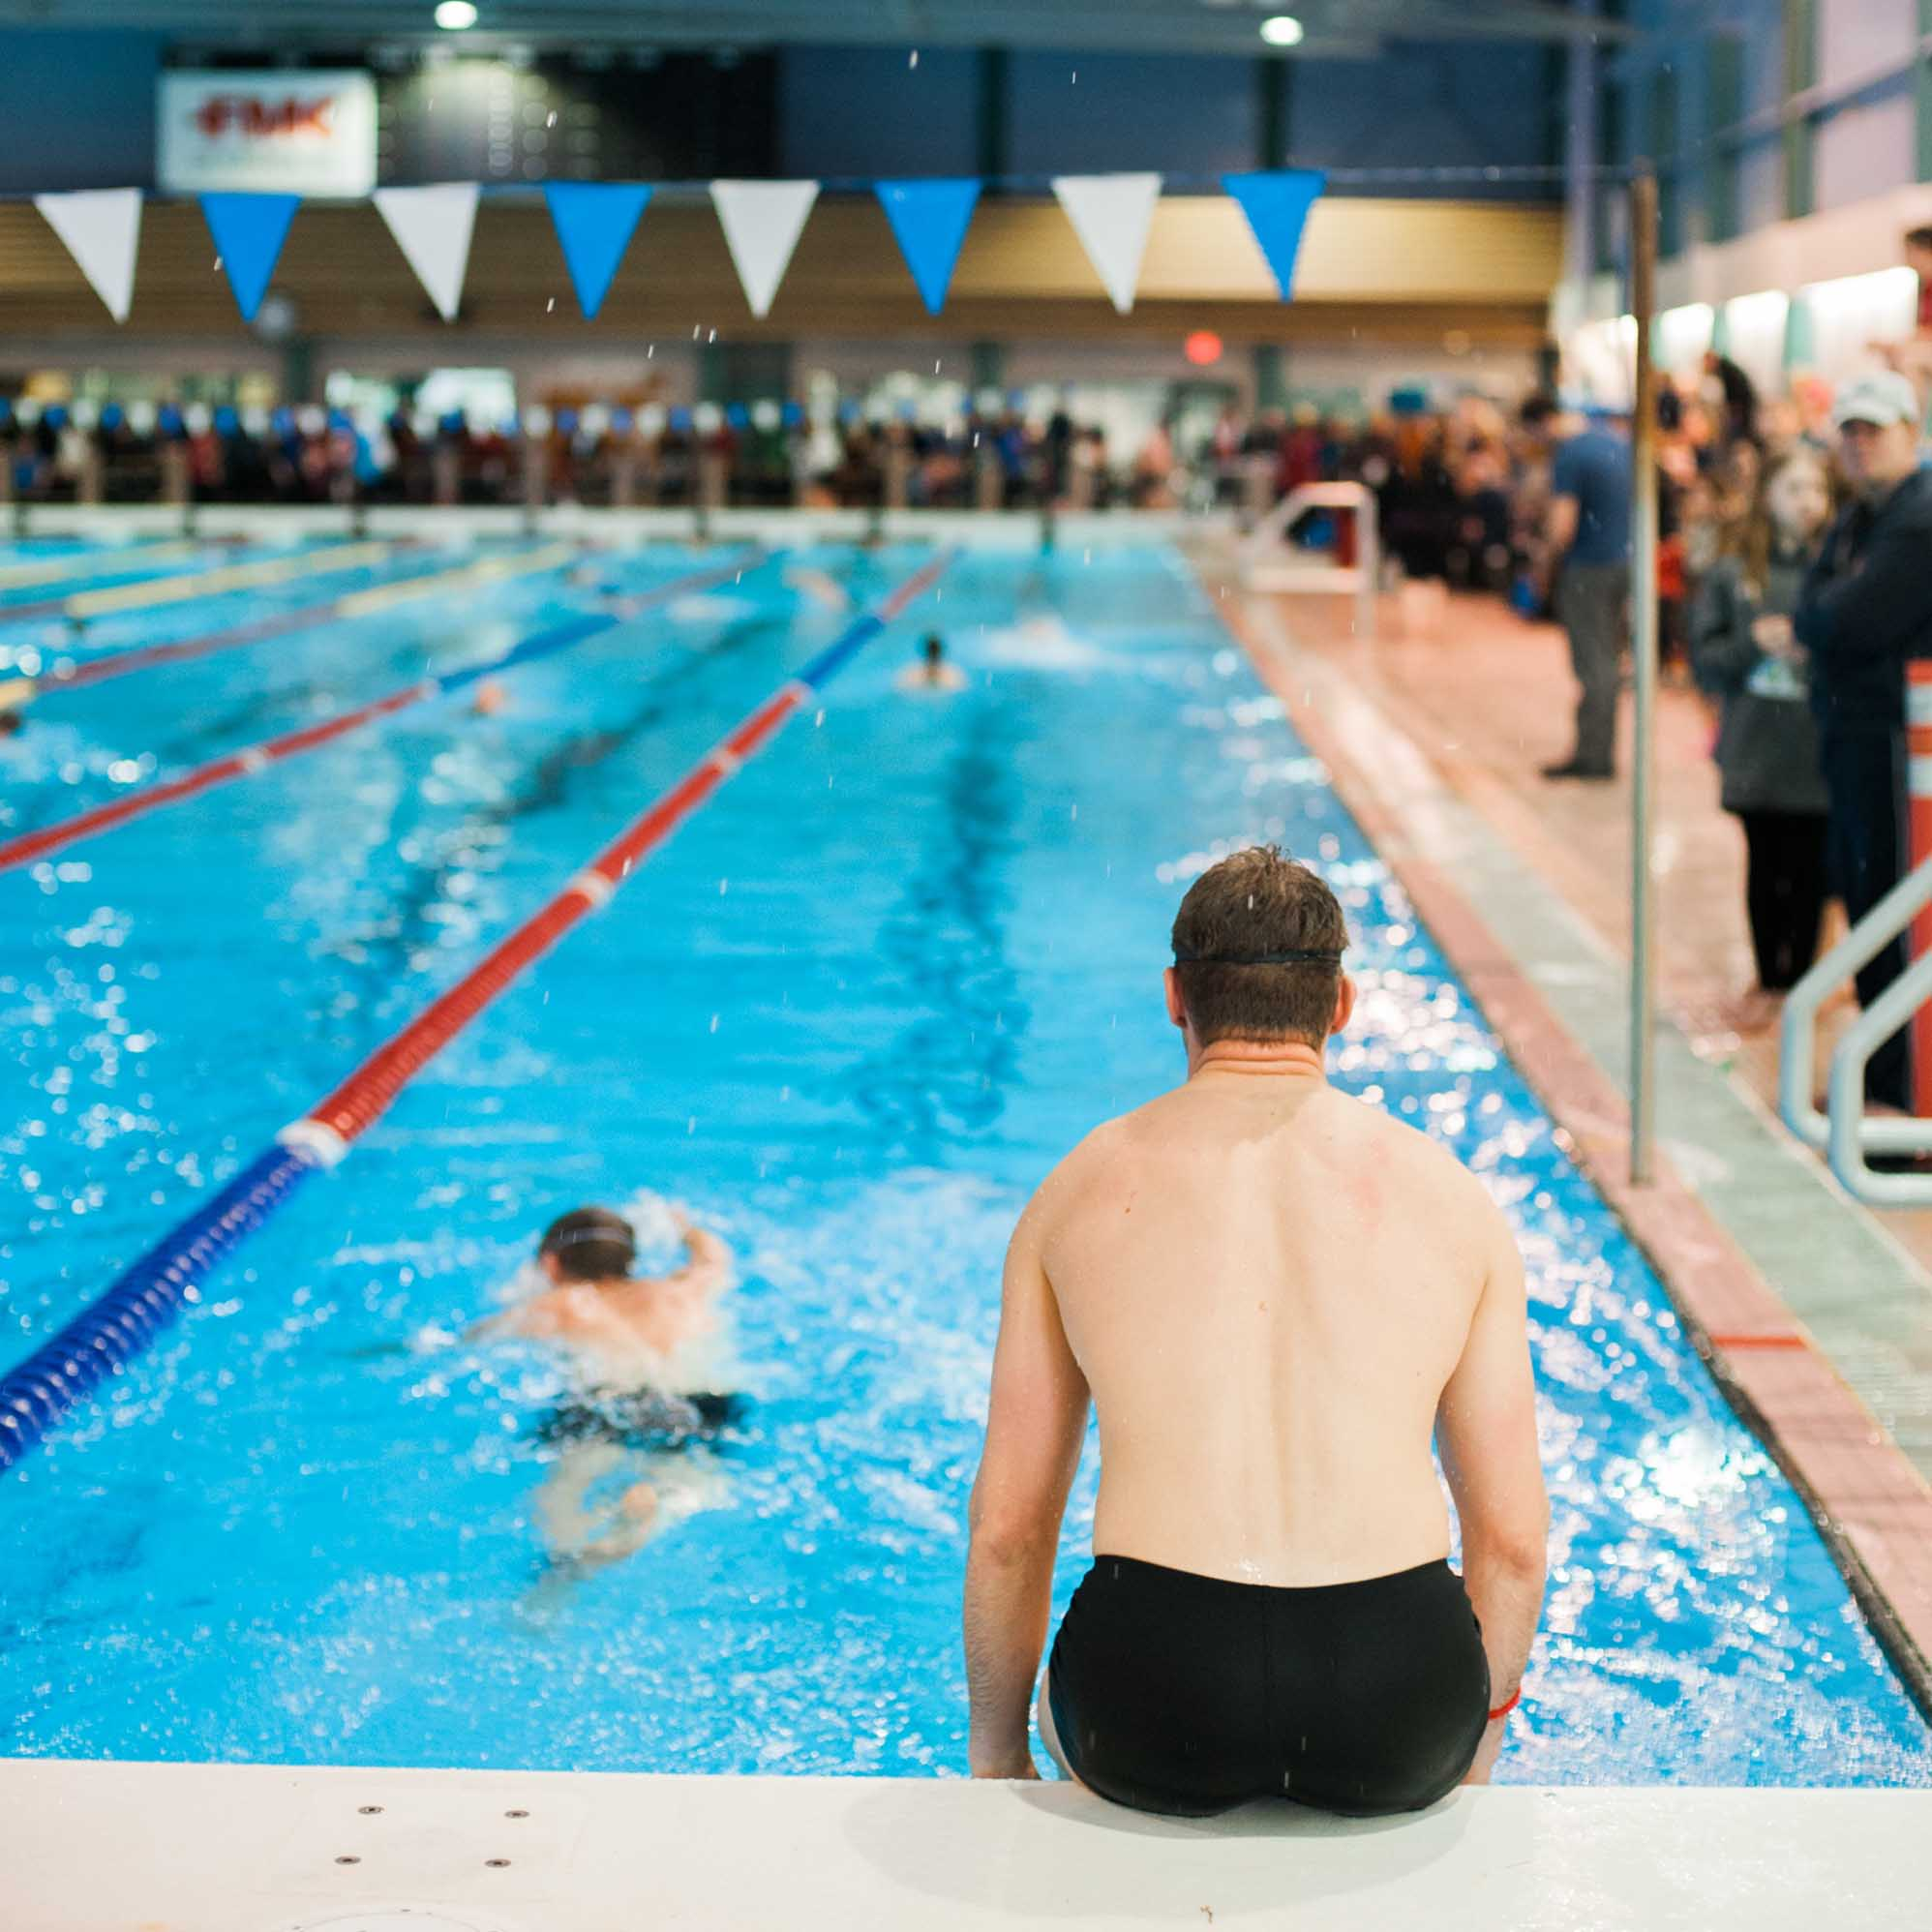 The PG Iceman swimming competition will take place at the Aquatic Centre on Sunday, Feb. 10.